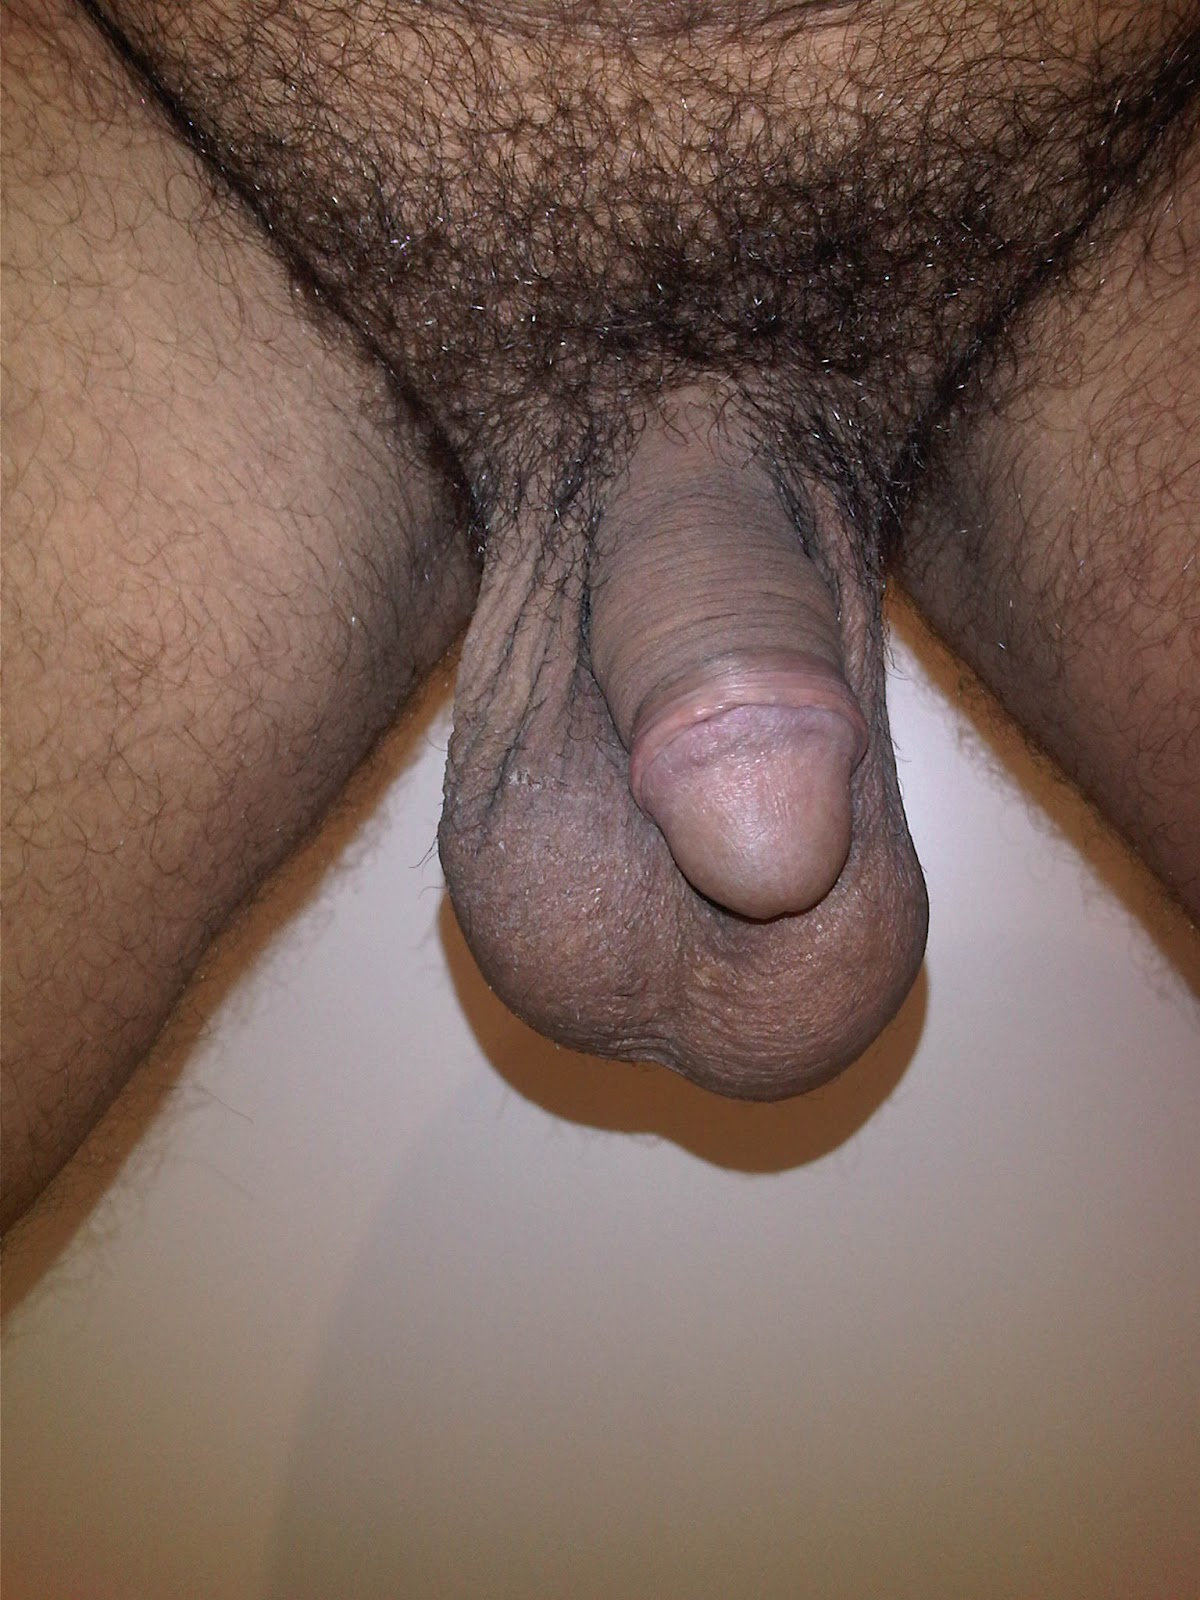 Big Dick Black Men Nude